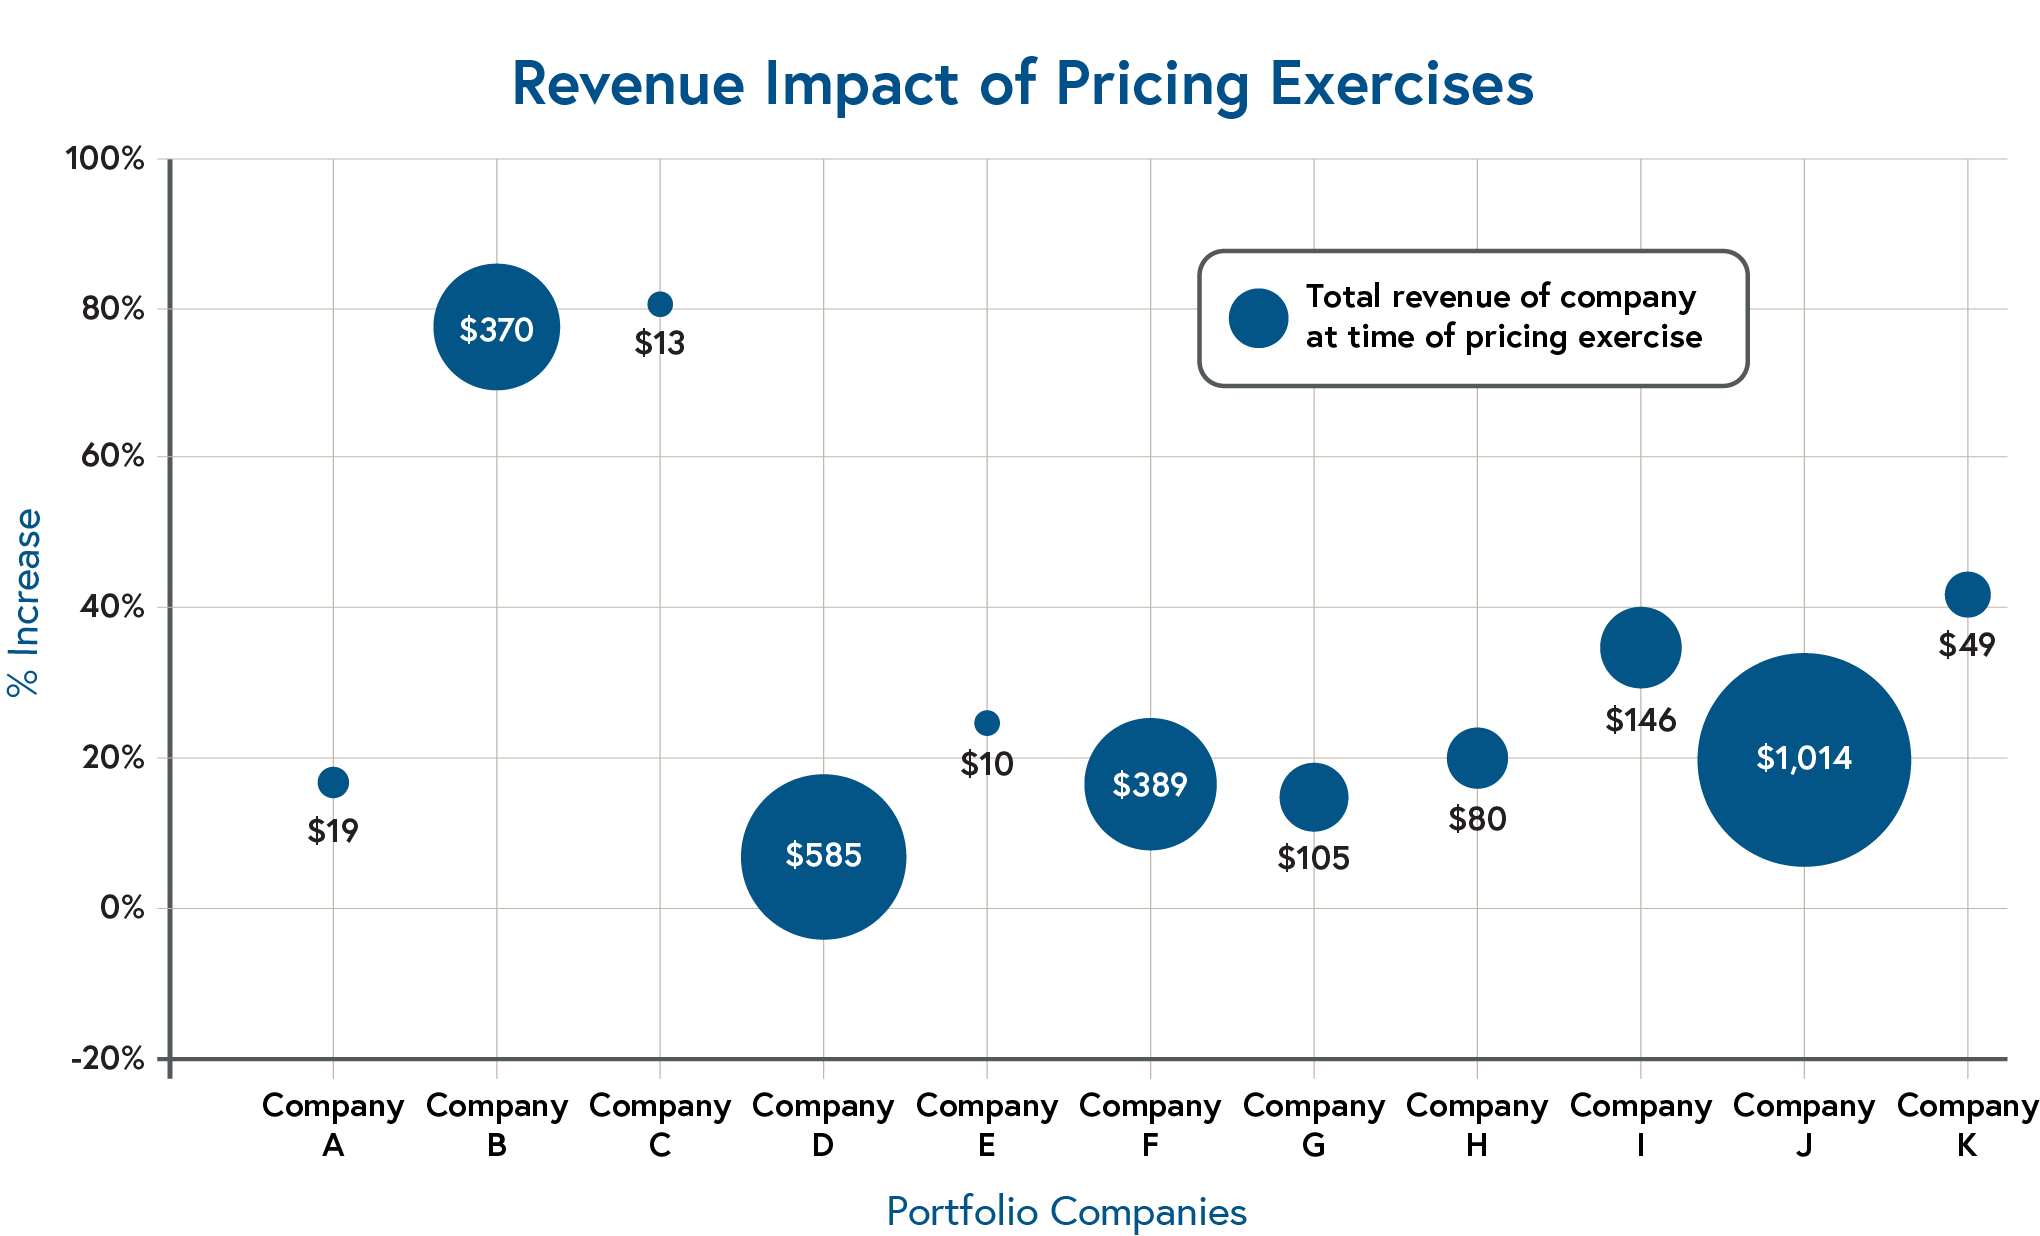 Chart showing Revenue Impact of Pricing Exercises